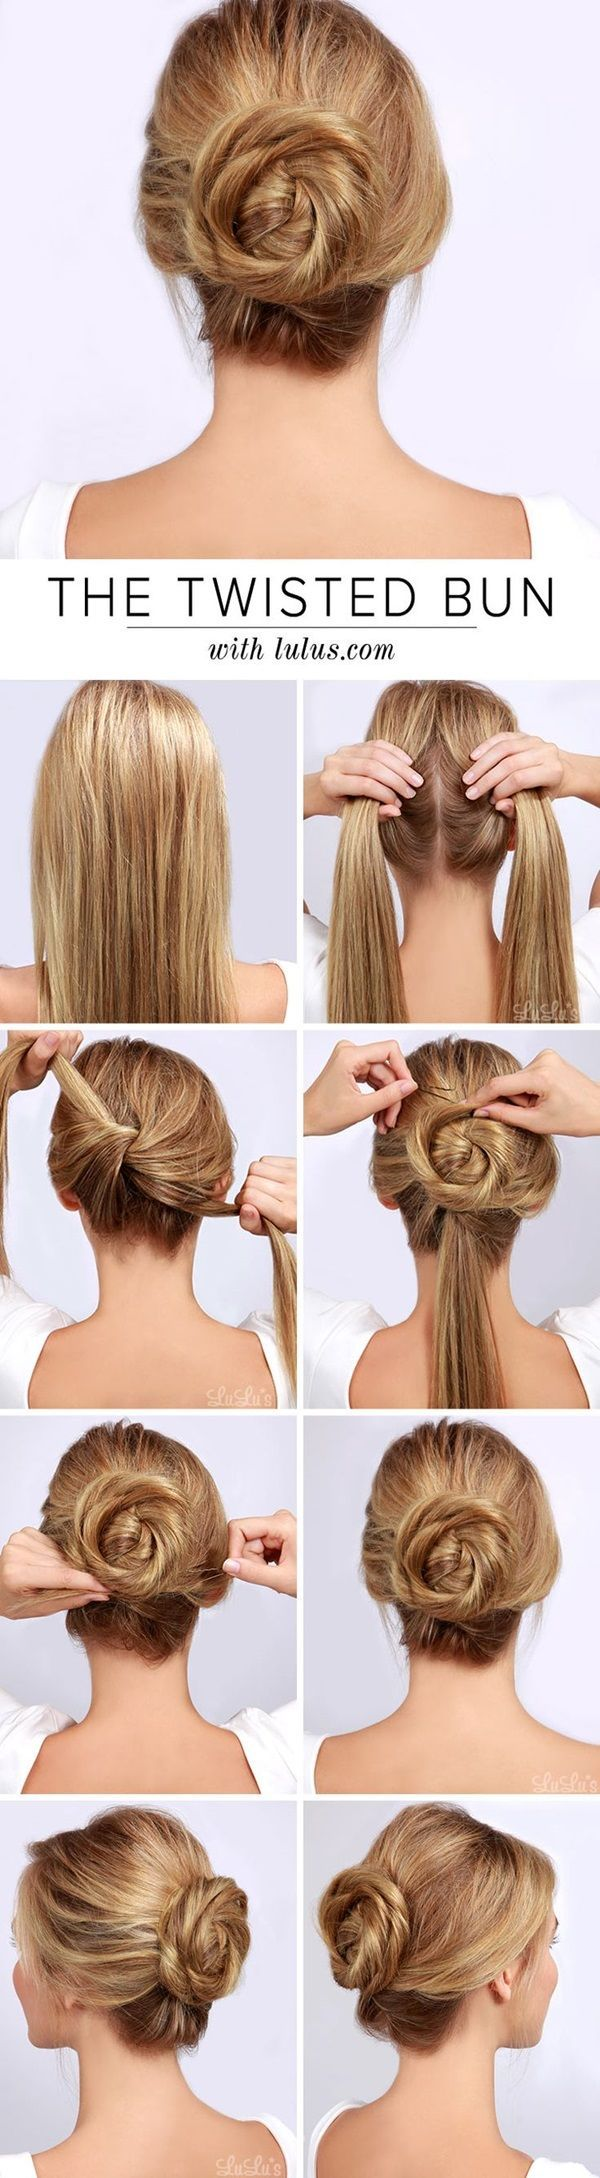 628 best beauty: hair tutorials and inspiration images on